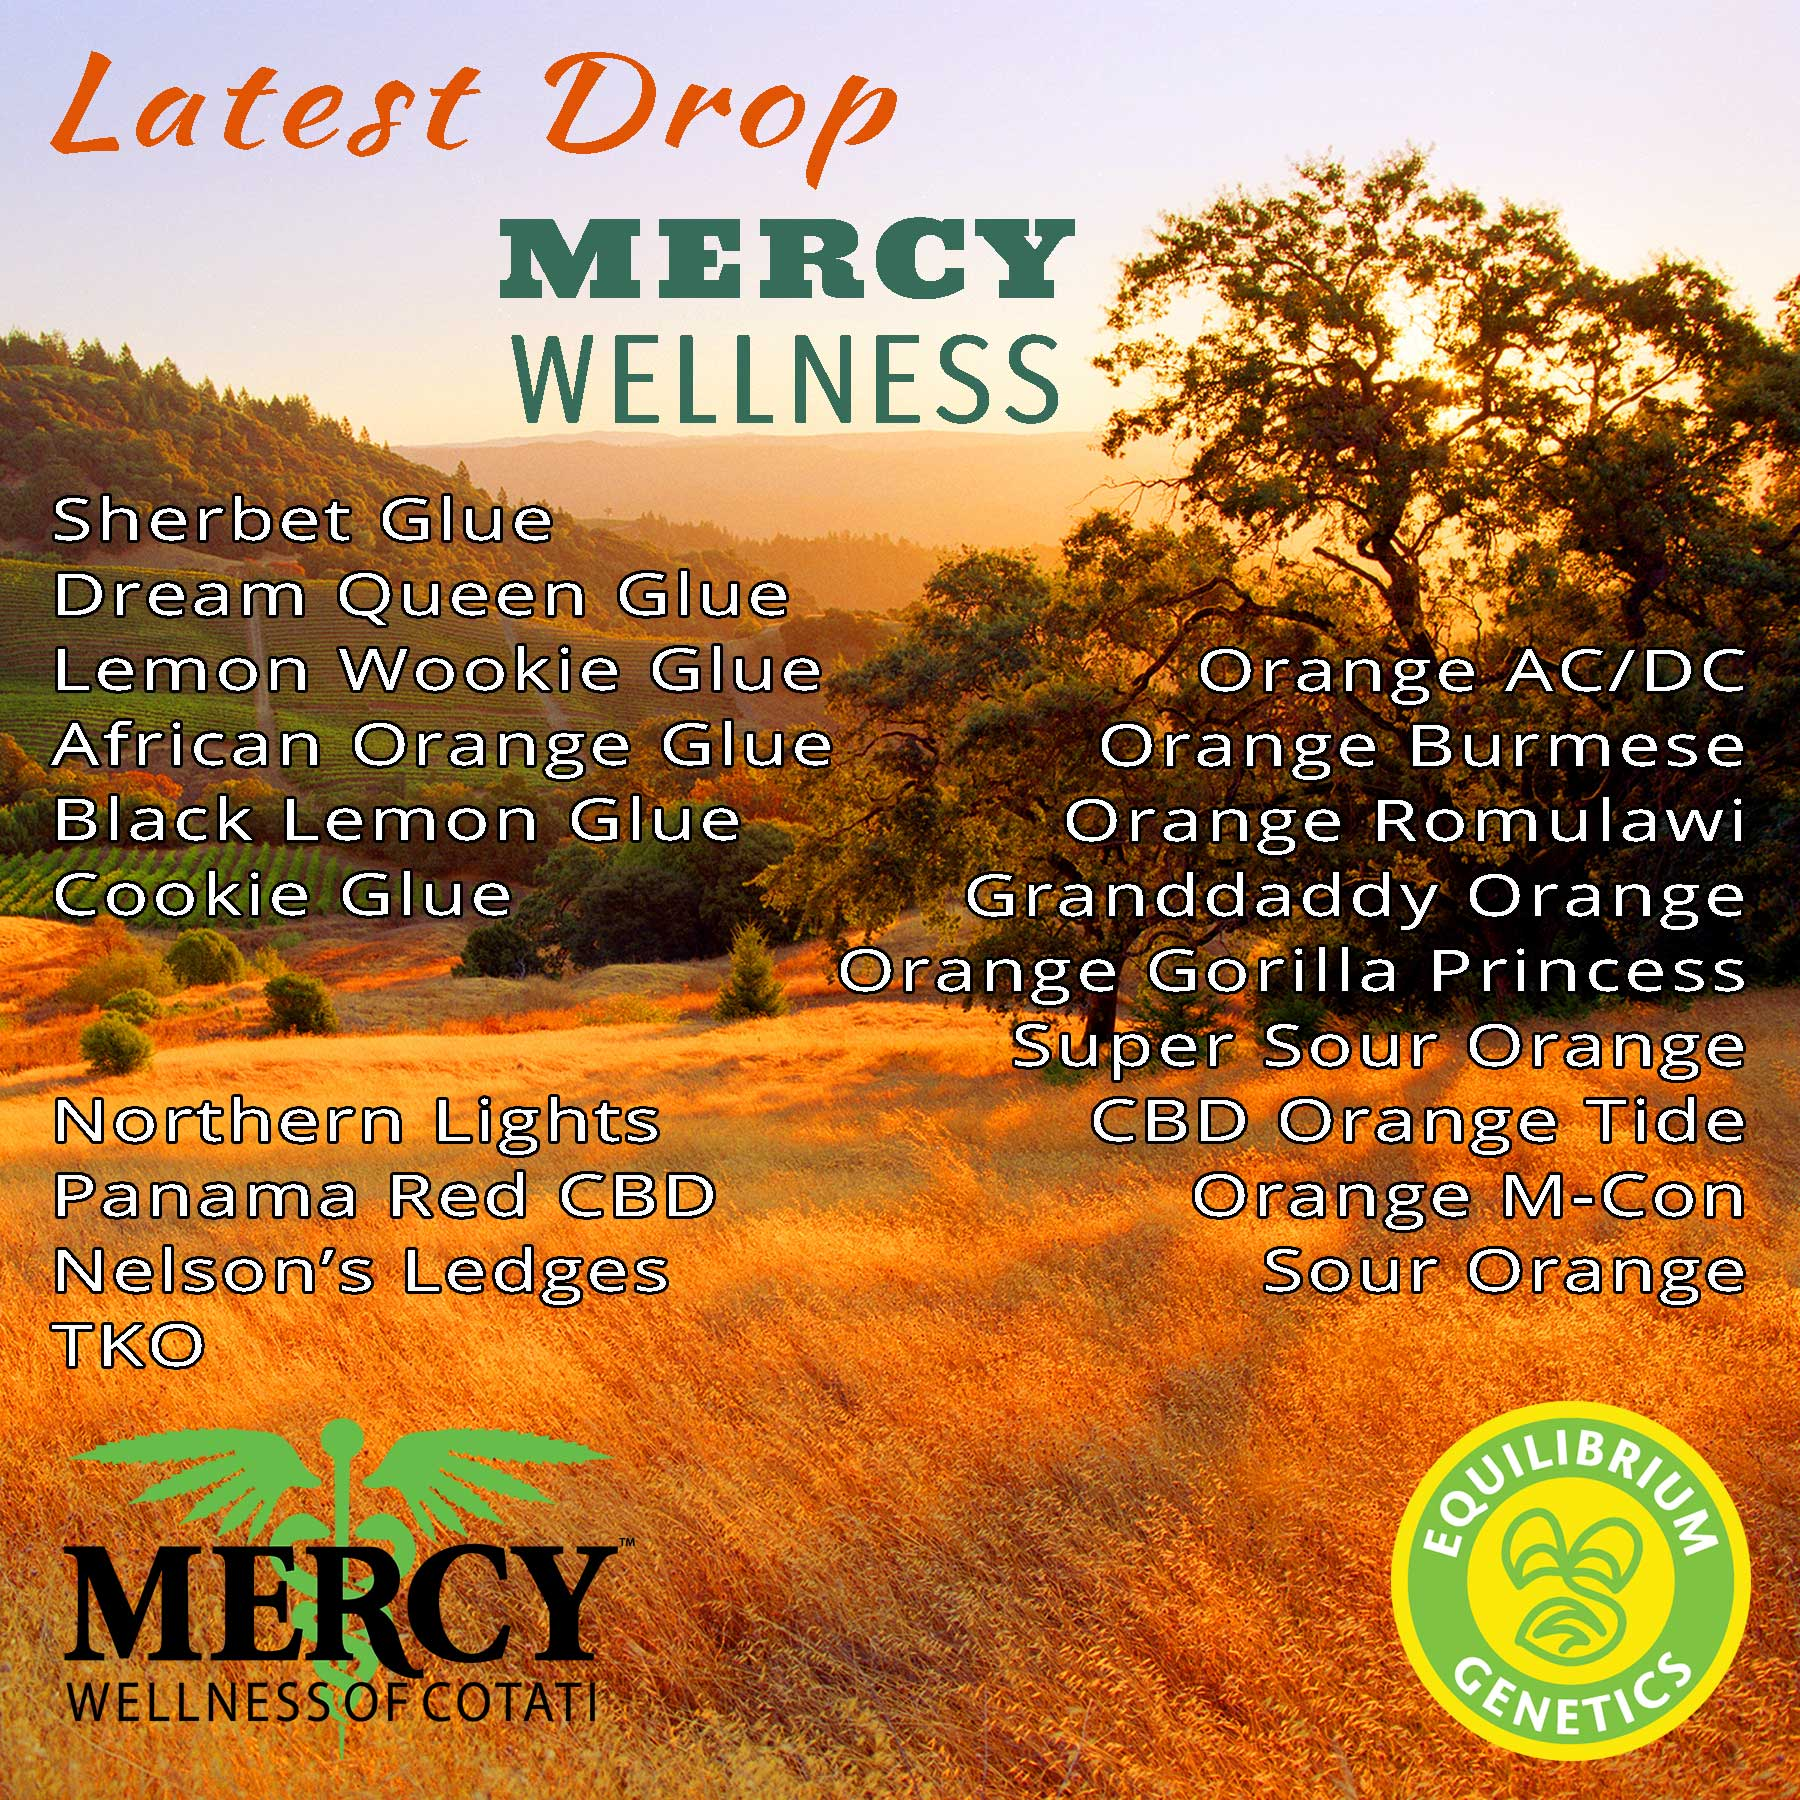 Latest Drop: Mercy Wellness